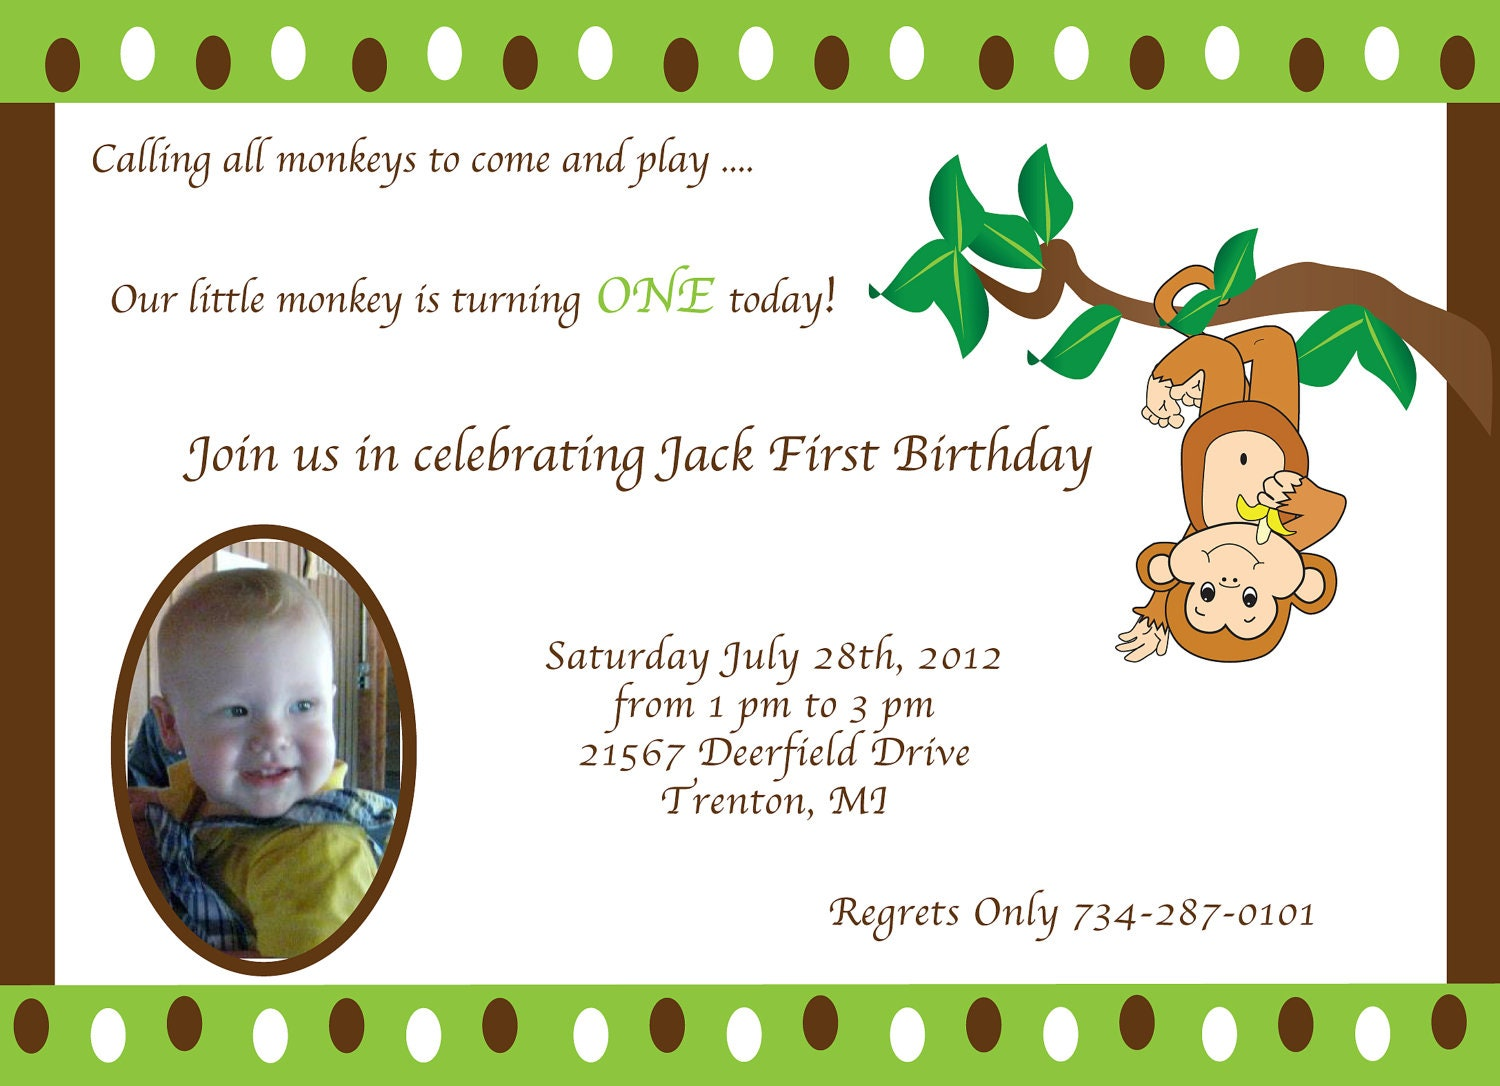 1st birthday invitation sample - Etame.mibawa.co